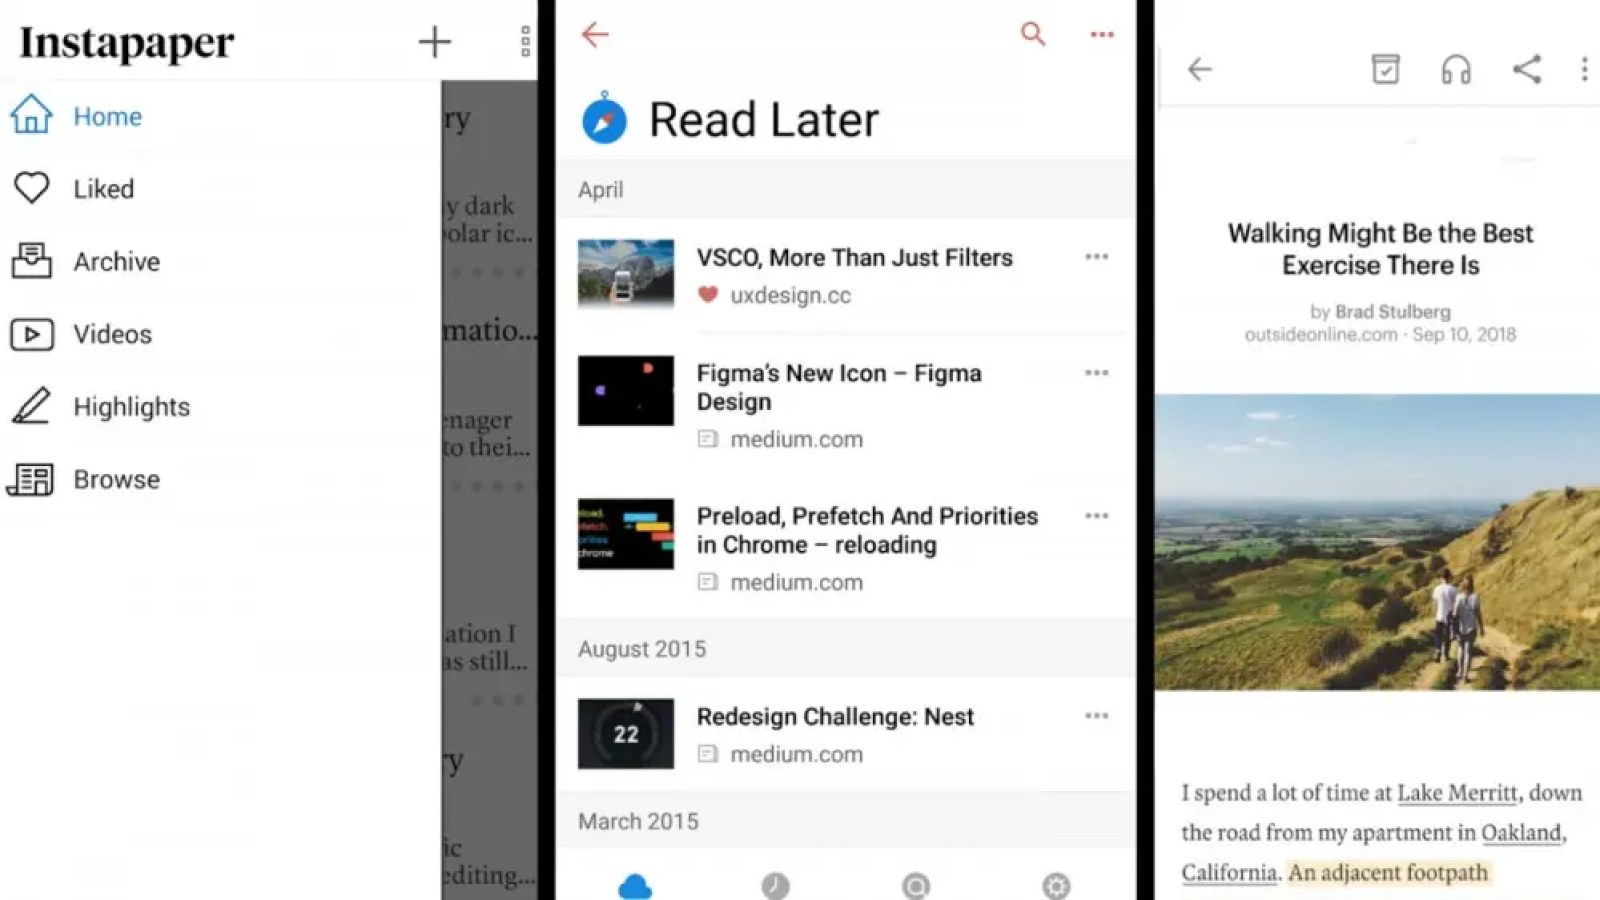 Screenshots of Instapaper, Raindrop.io, and Pocket in a collage